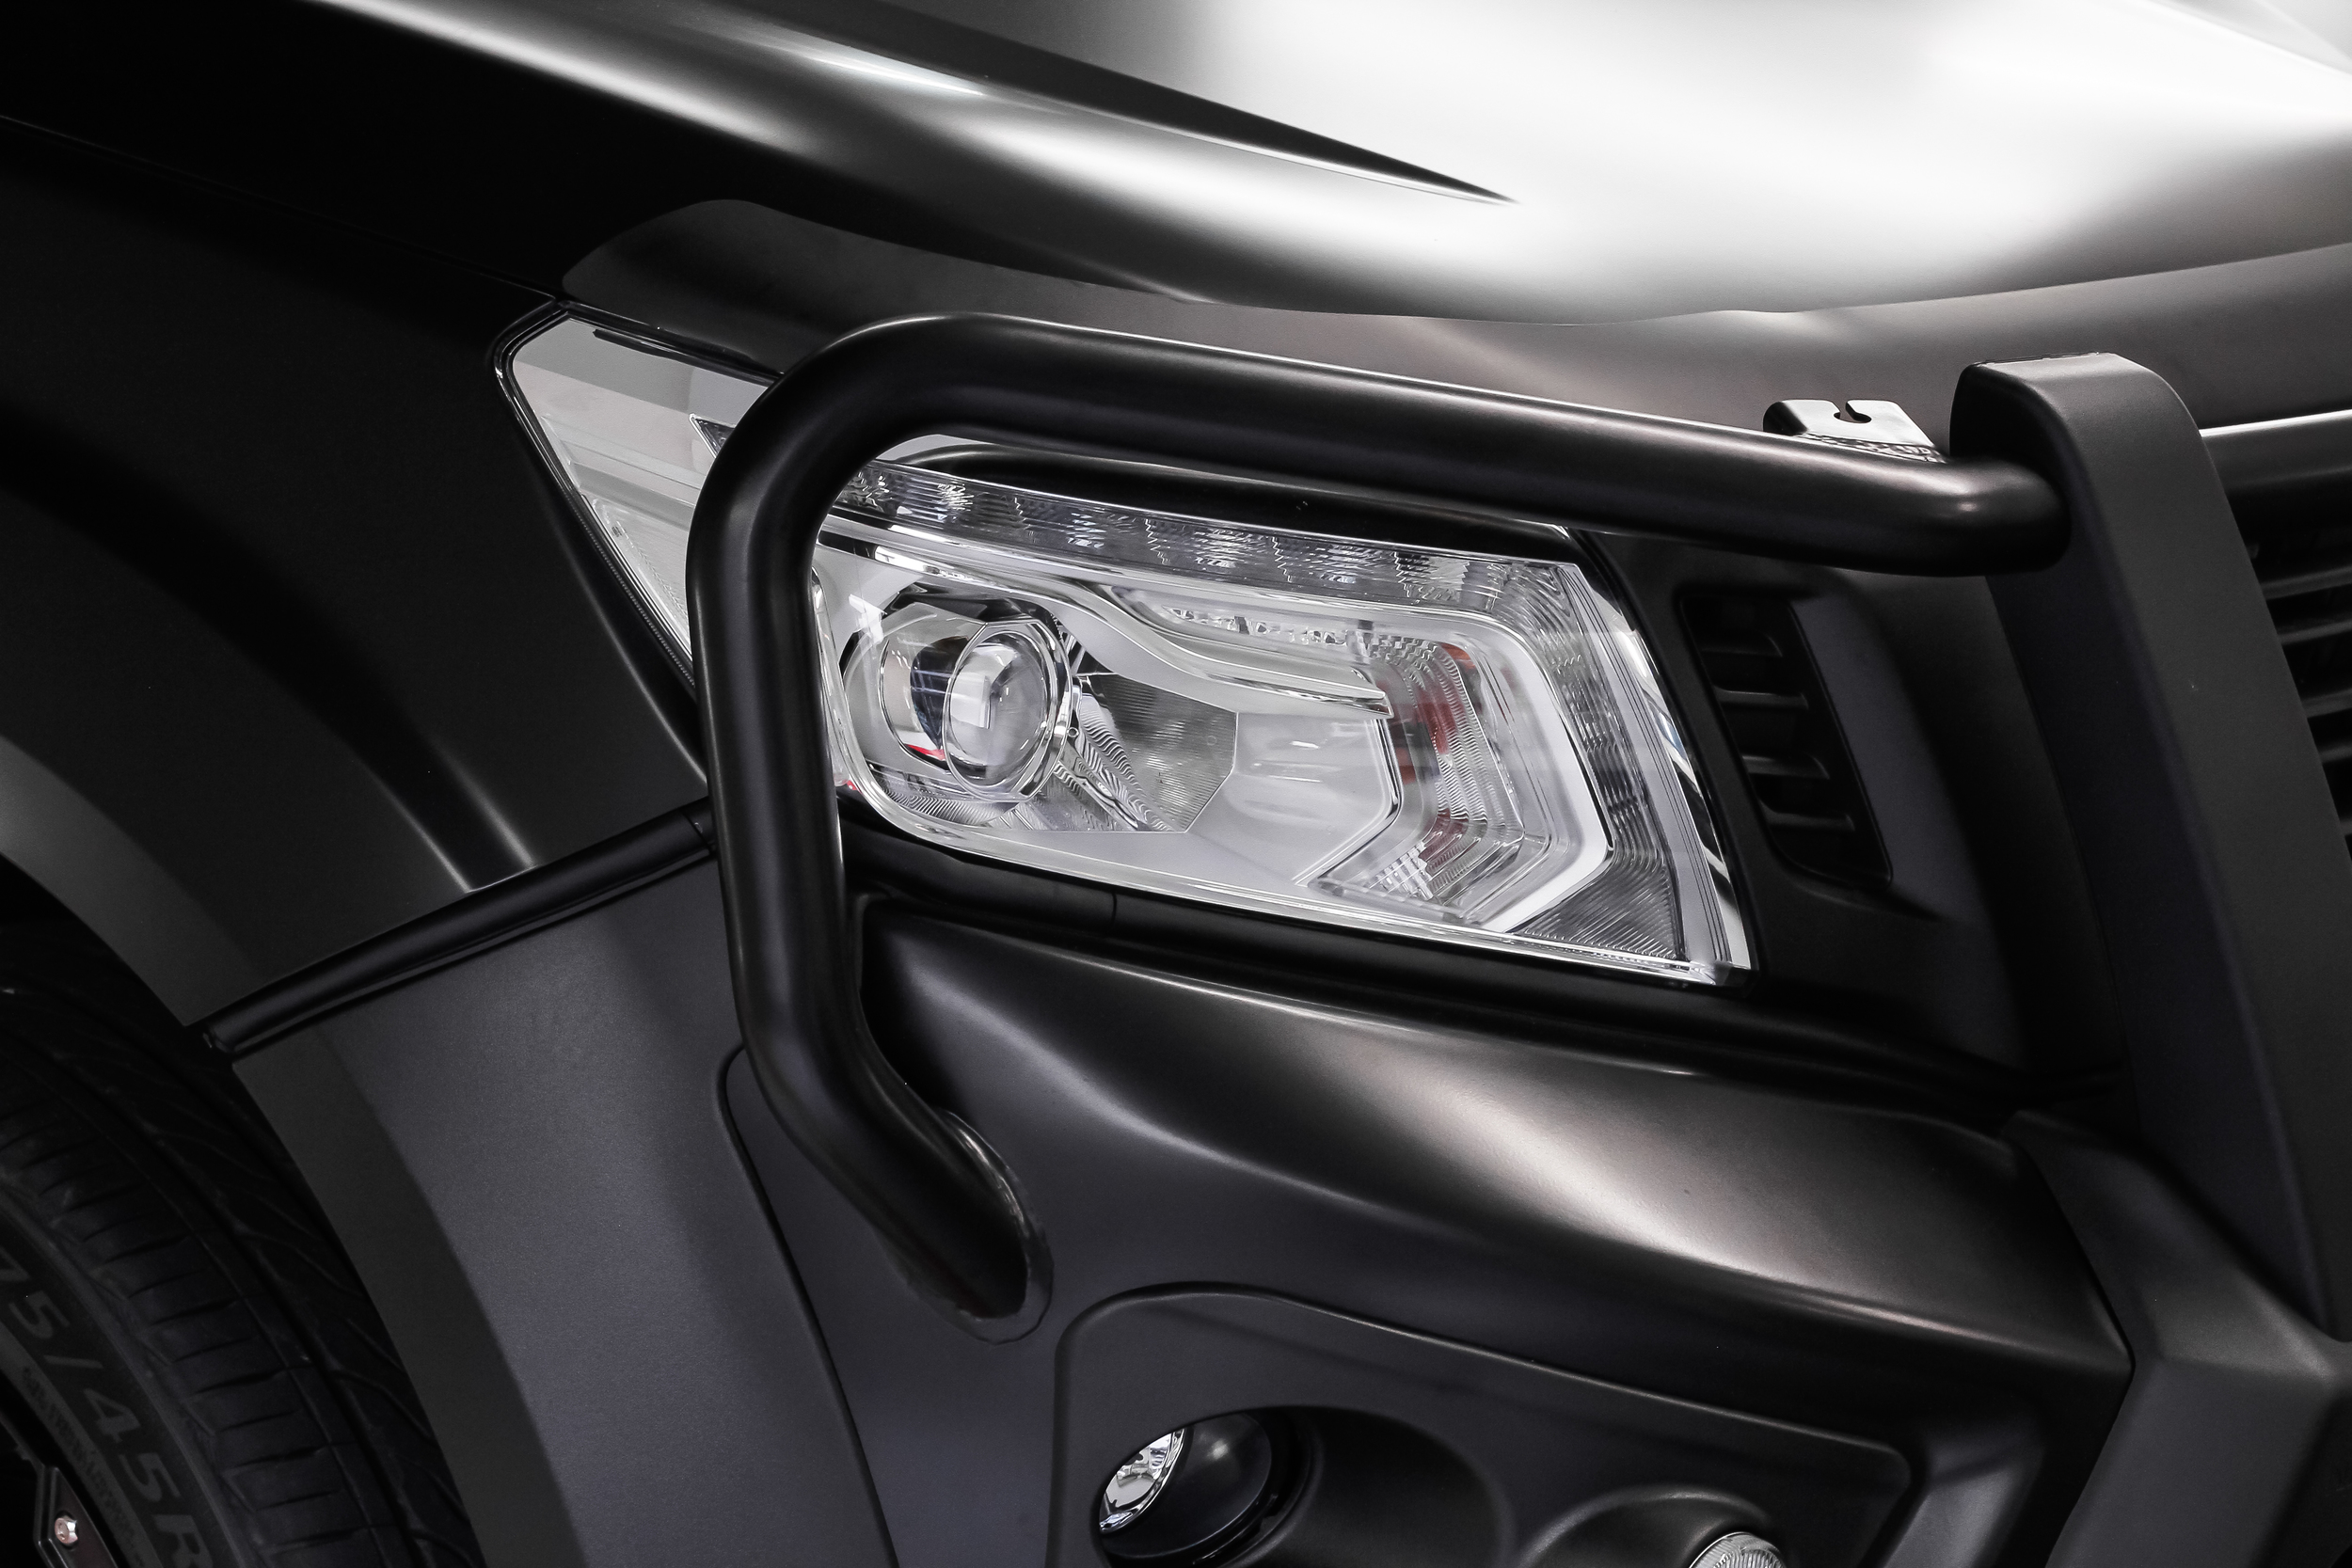 Matt Black 2015 Nissan Navara front headlight